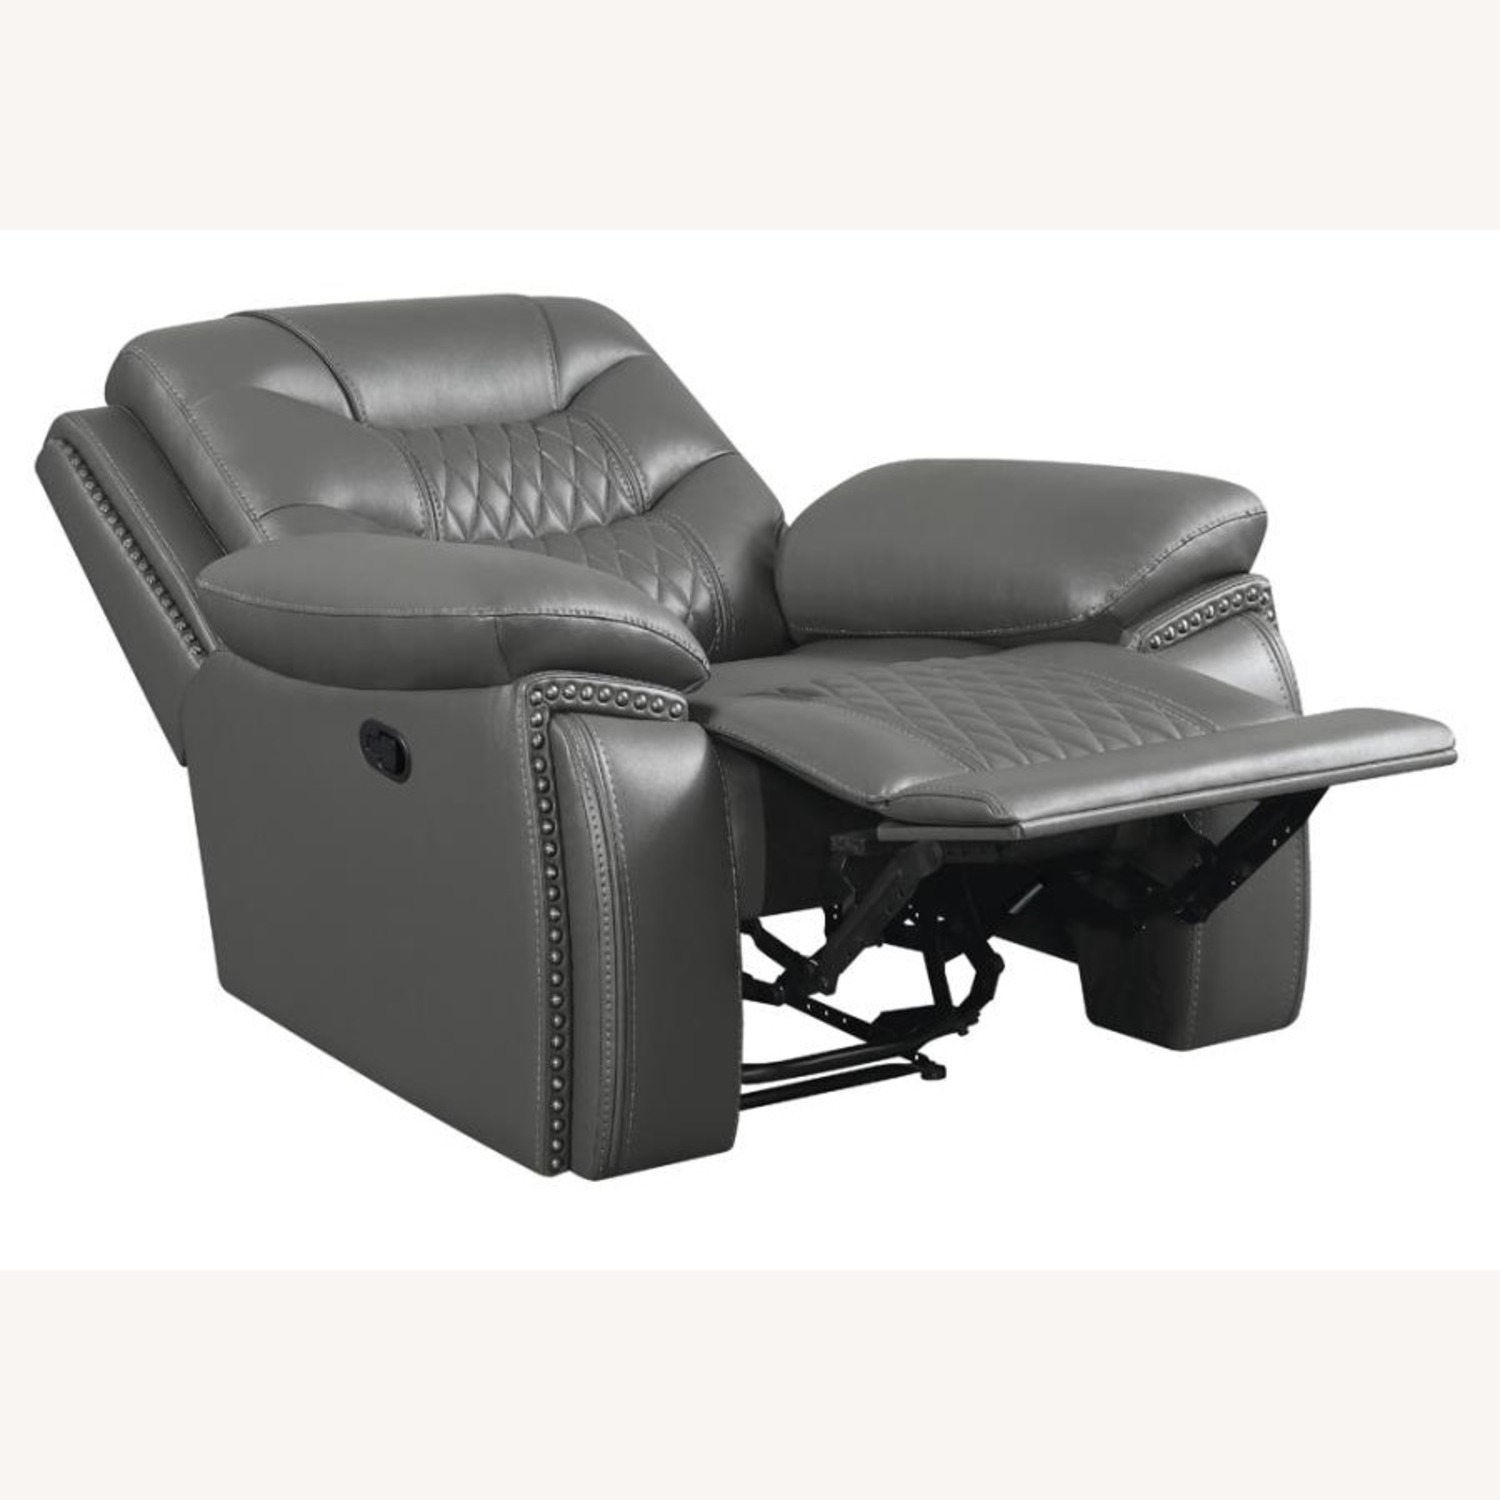 Recliner In Charcoal Performance Leatherette - image-1